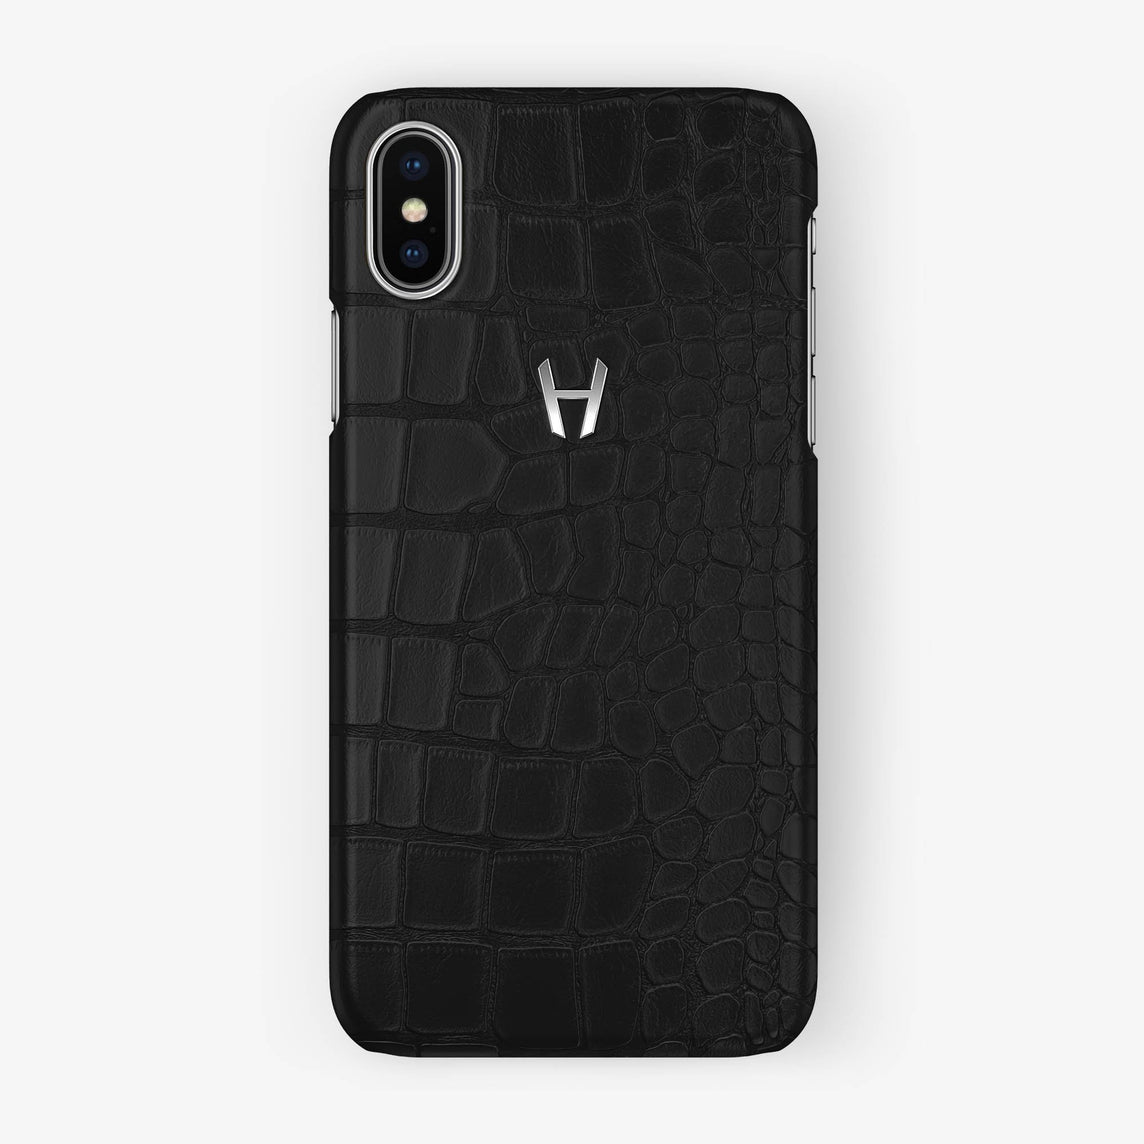 Alligator Case iPhone X/Xs | Phantom Black - Stainless Steel without-personalization